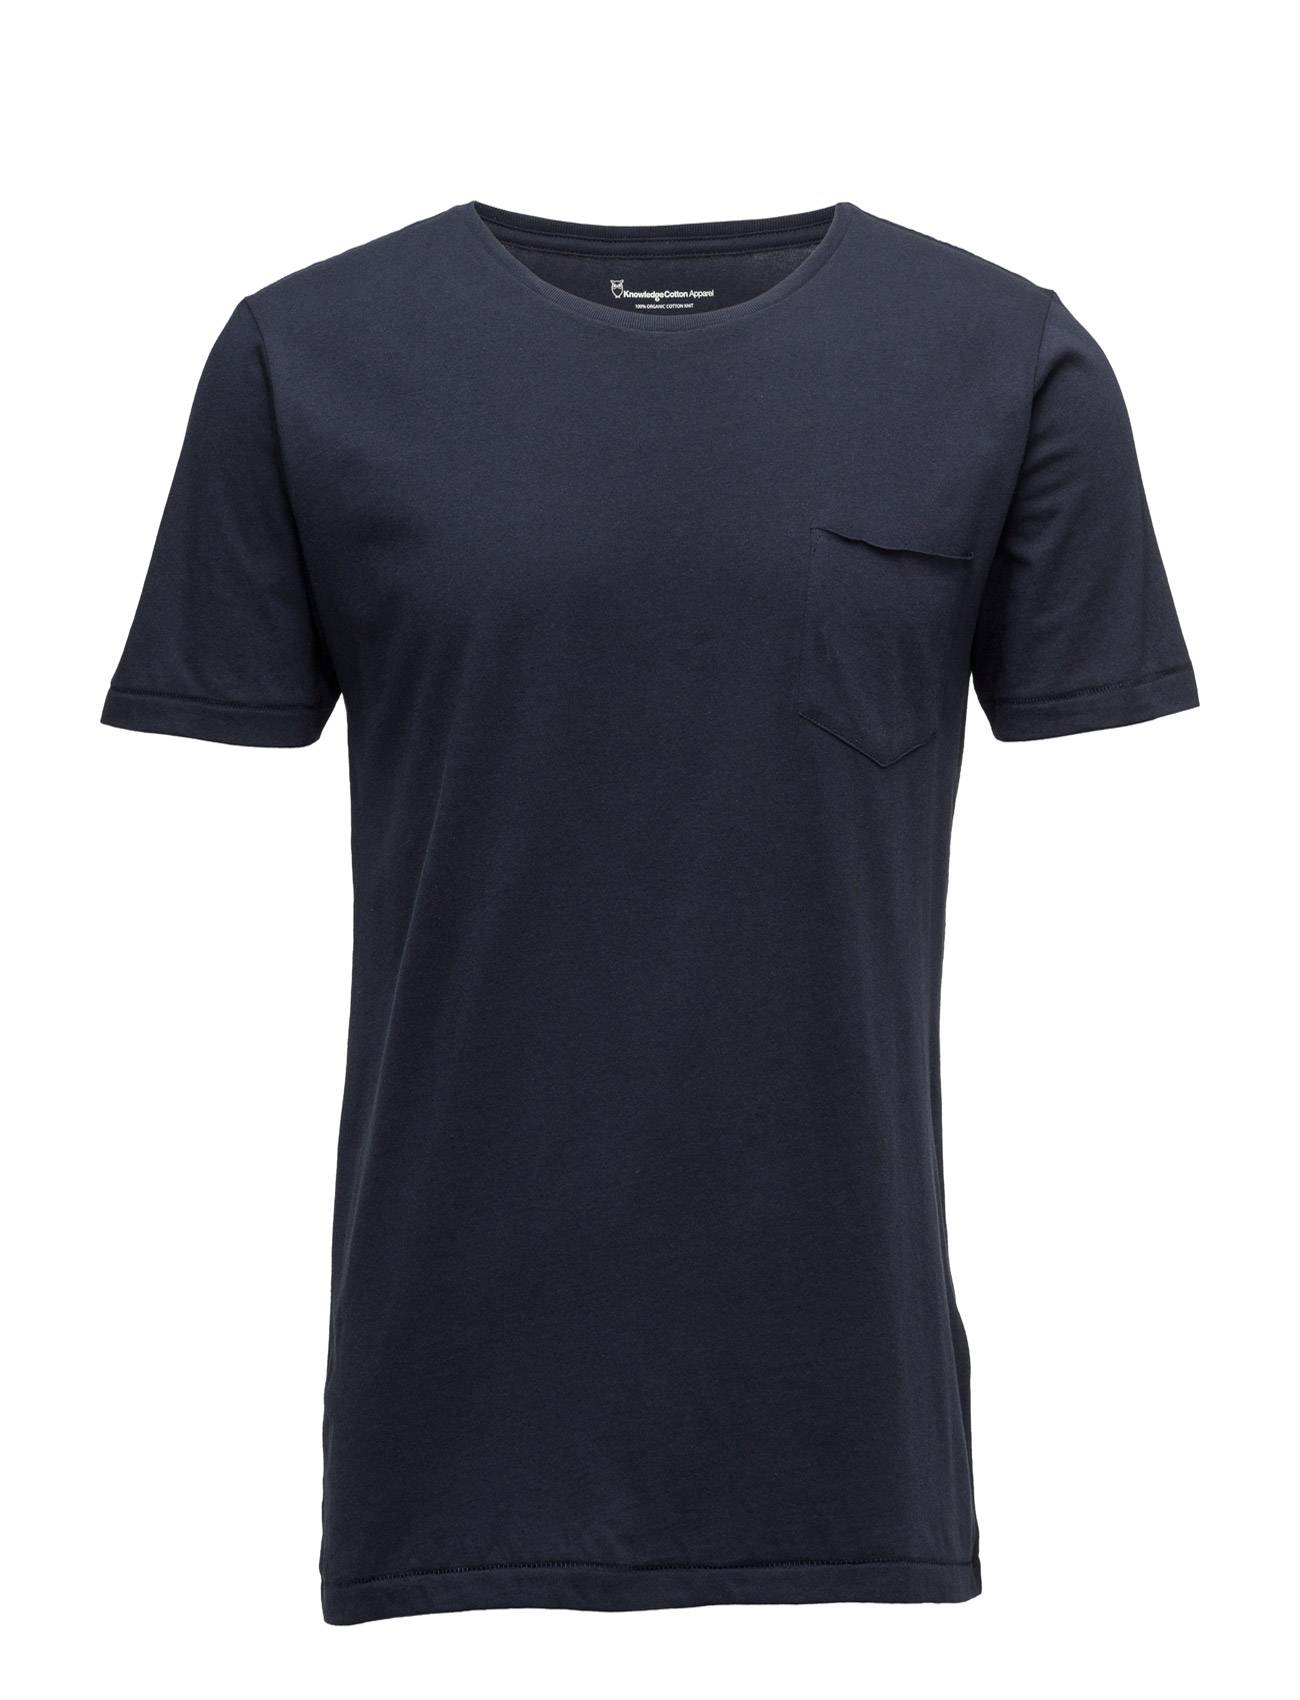 Knowledge Cotton Apparel Basic Tee With Chest Pocket Gots/Ve